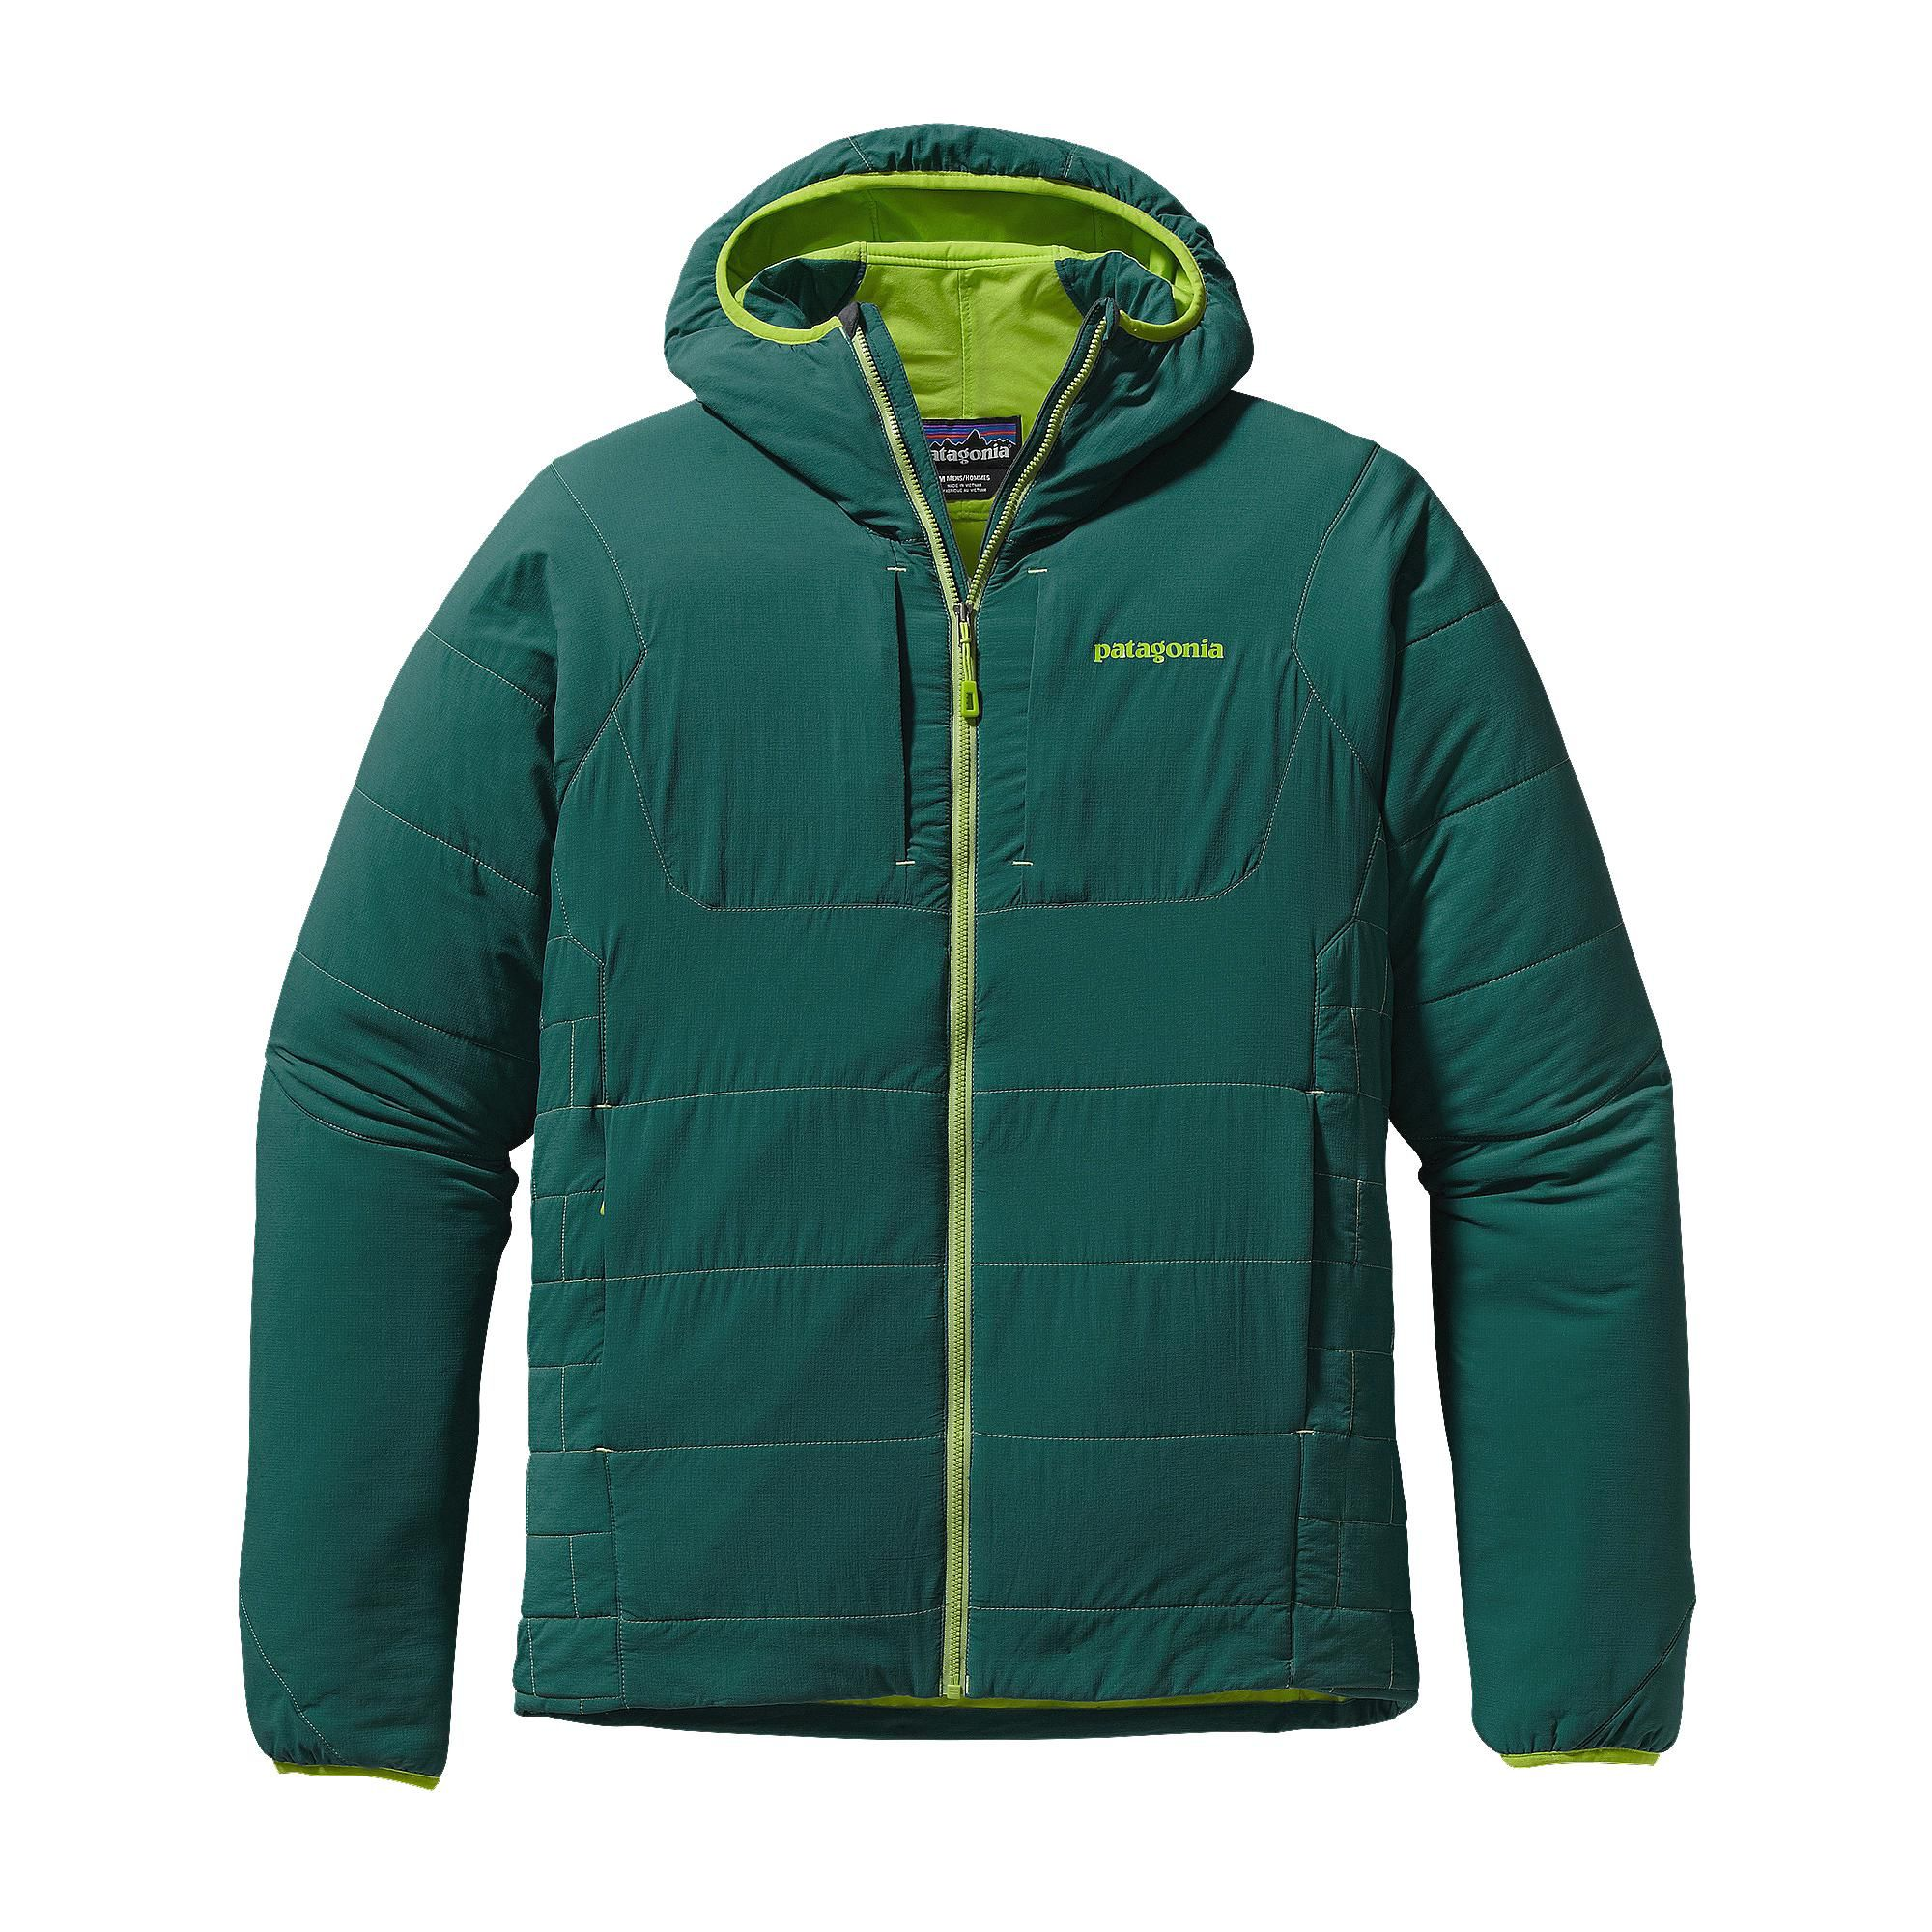 From trailhead to summit and back, the new Men's NanoAir